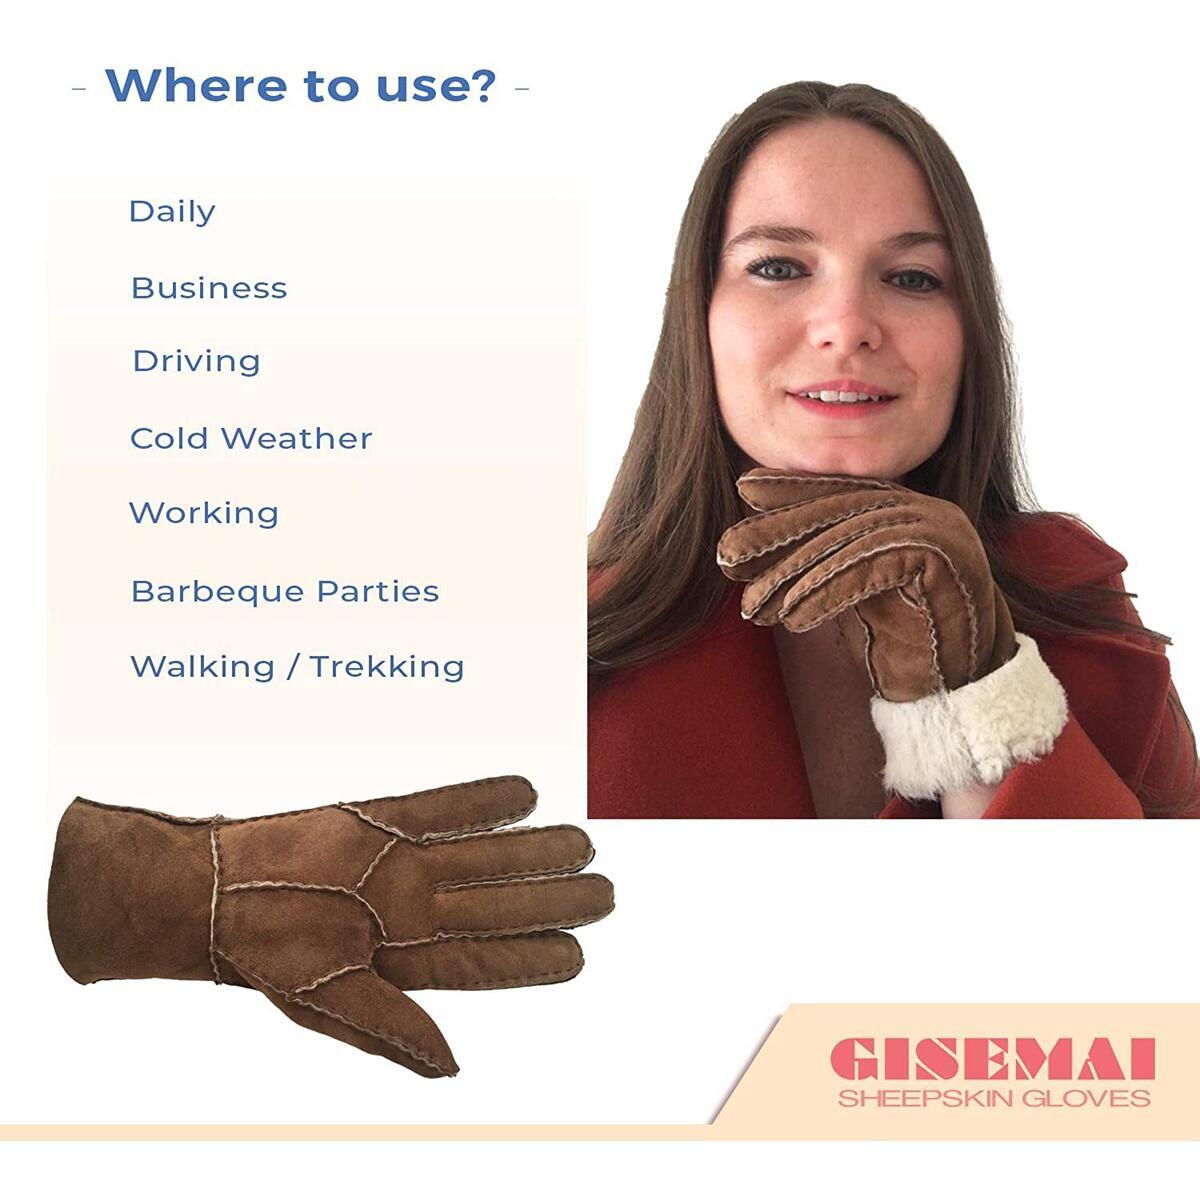 Genuine Shearling Sheepskin Fur Lined Leather Gloves | Unisex Small Winter Gloves | Cold Weather Work, Driving Glove